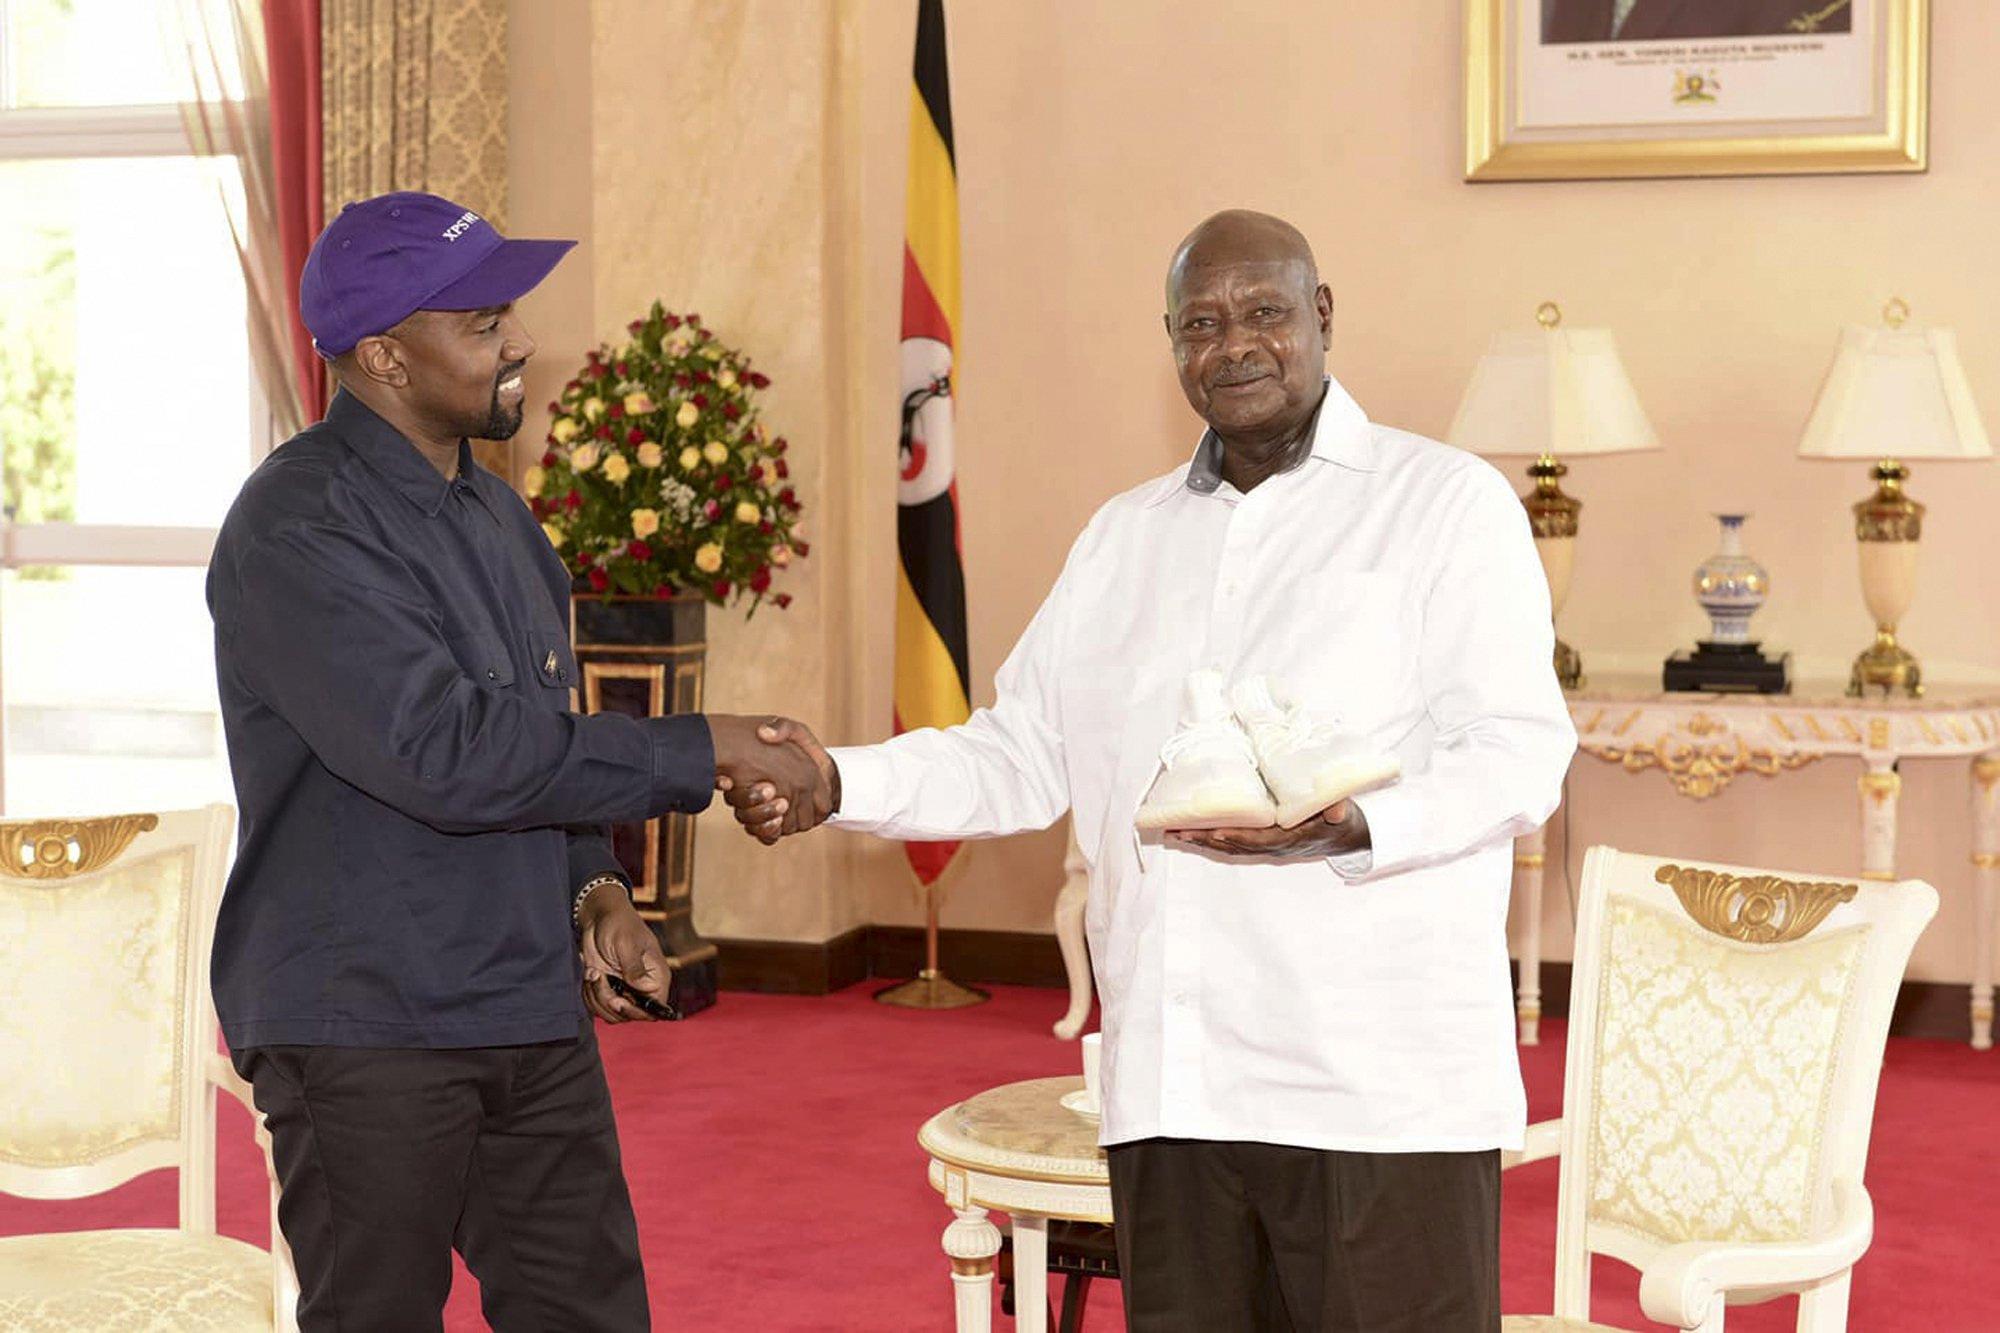 Kanye West meets Ugandas president, gifts pair of sneakers images